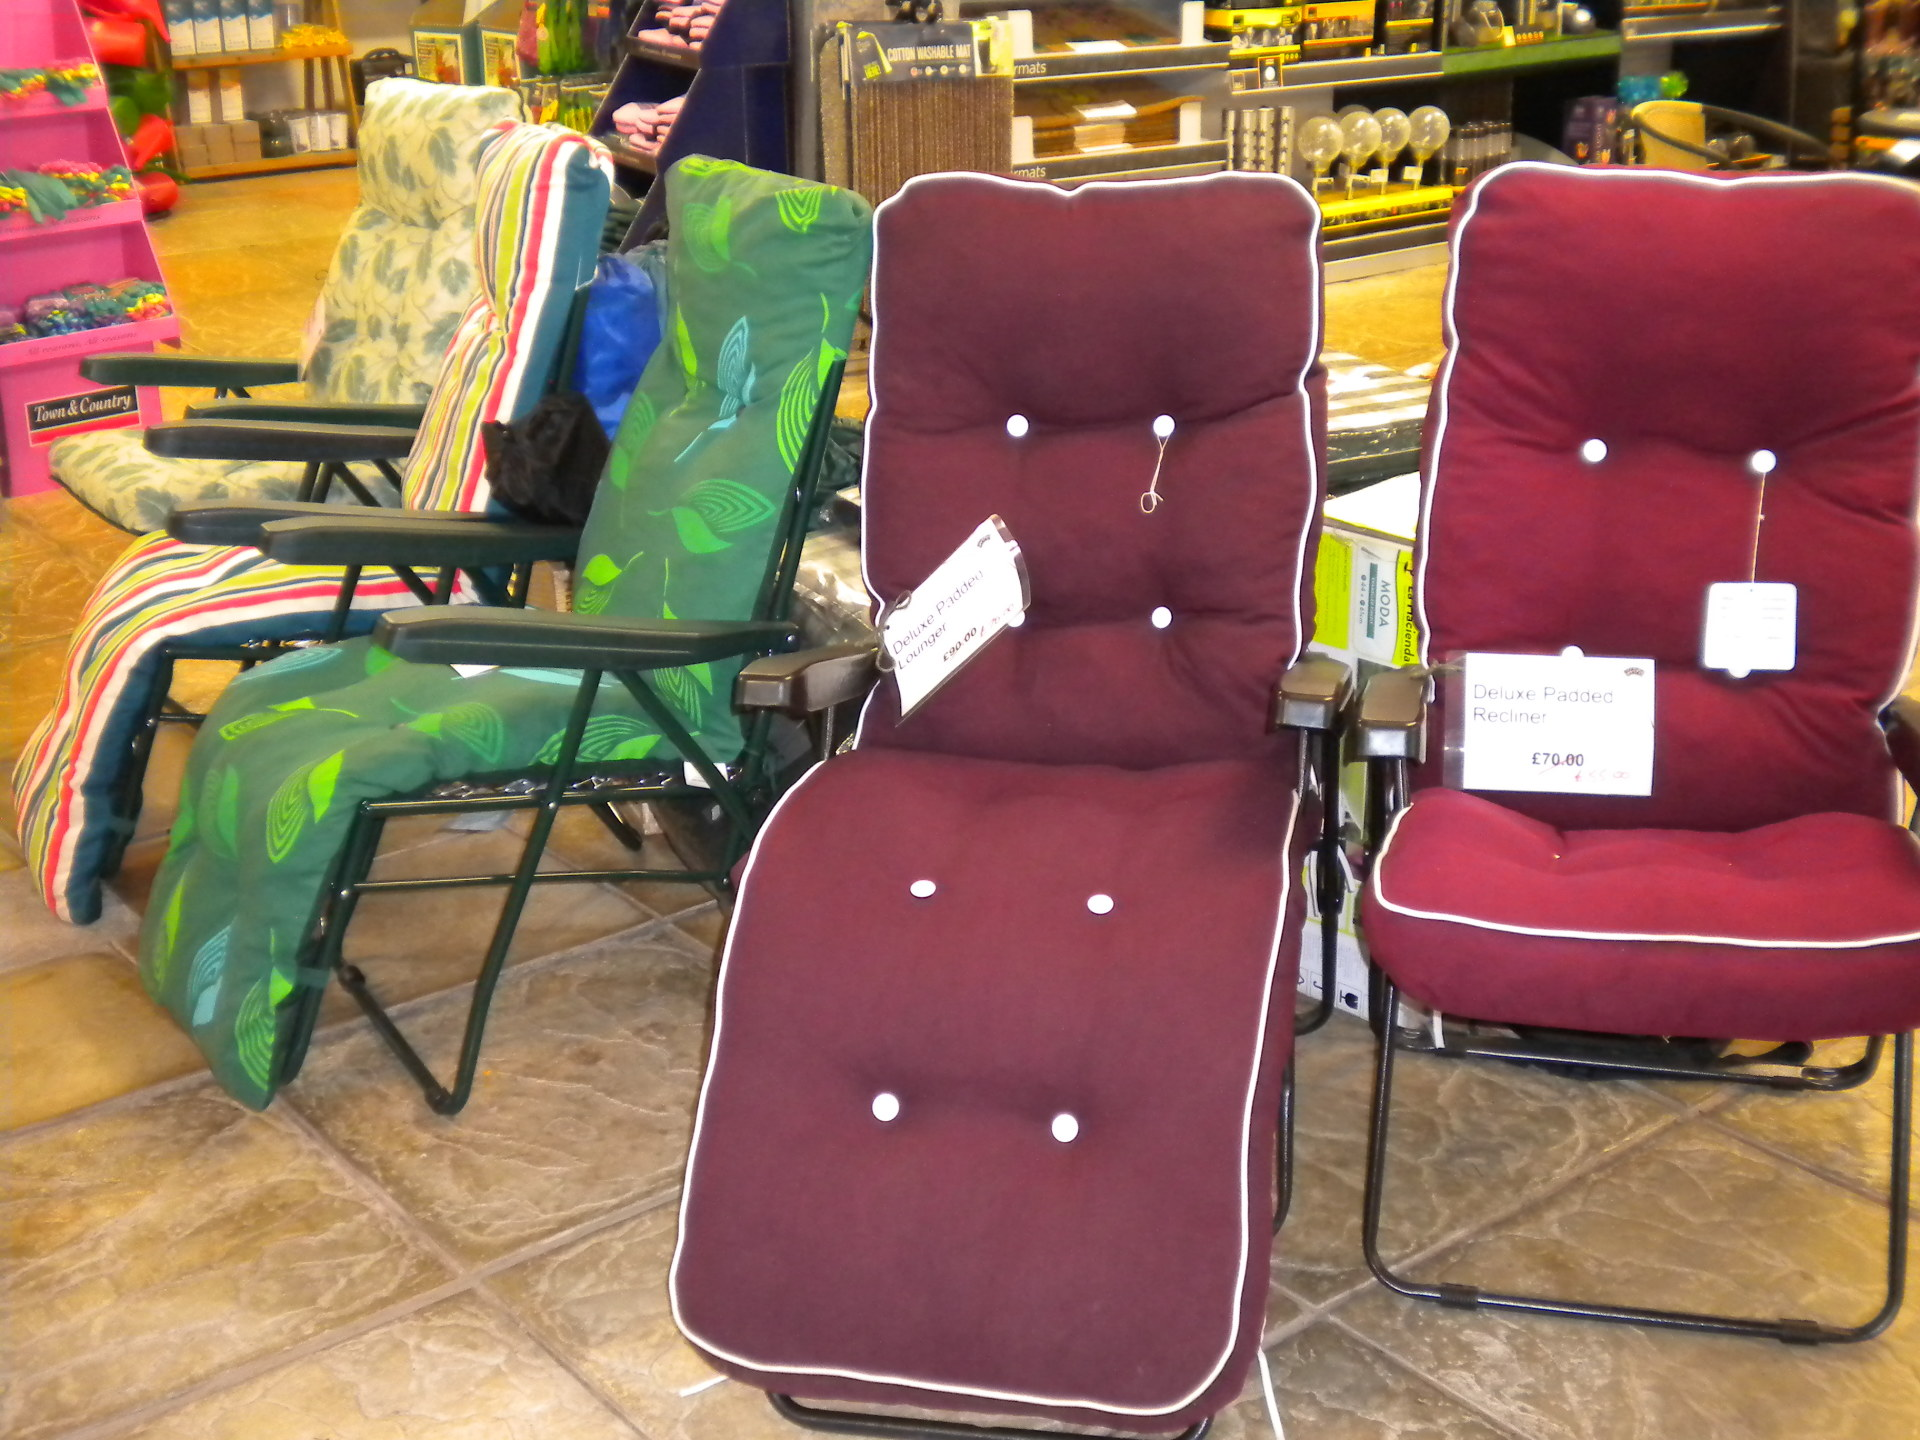 Luxury lounger - now £70